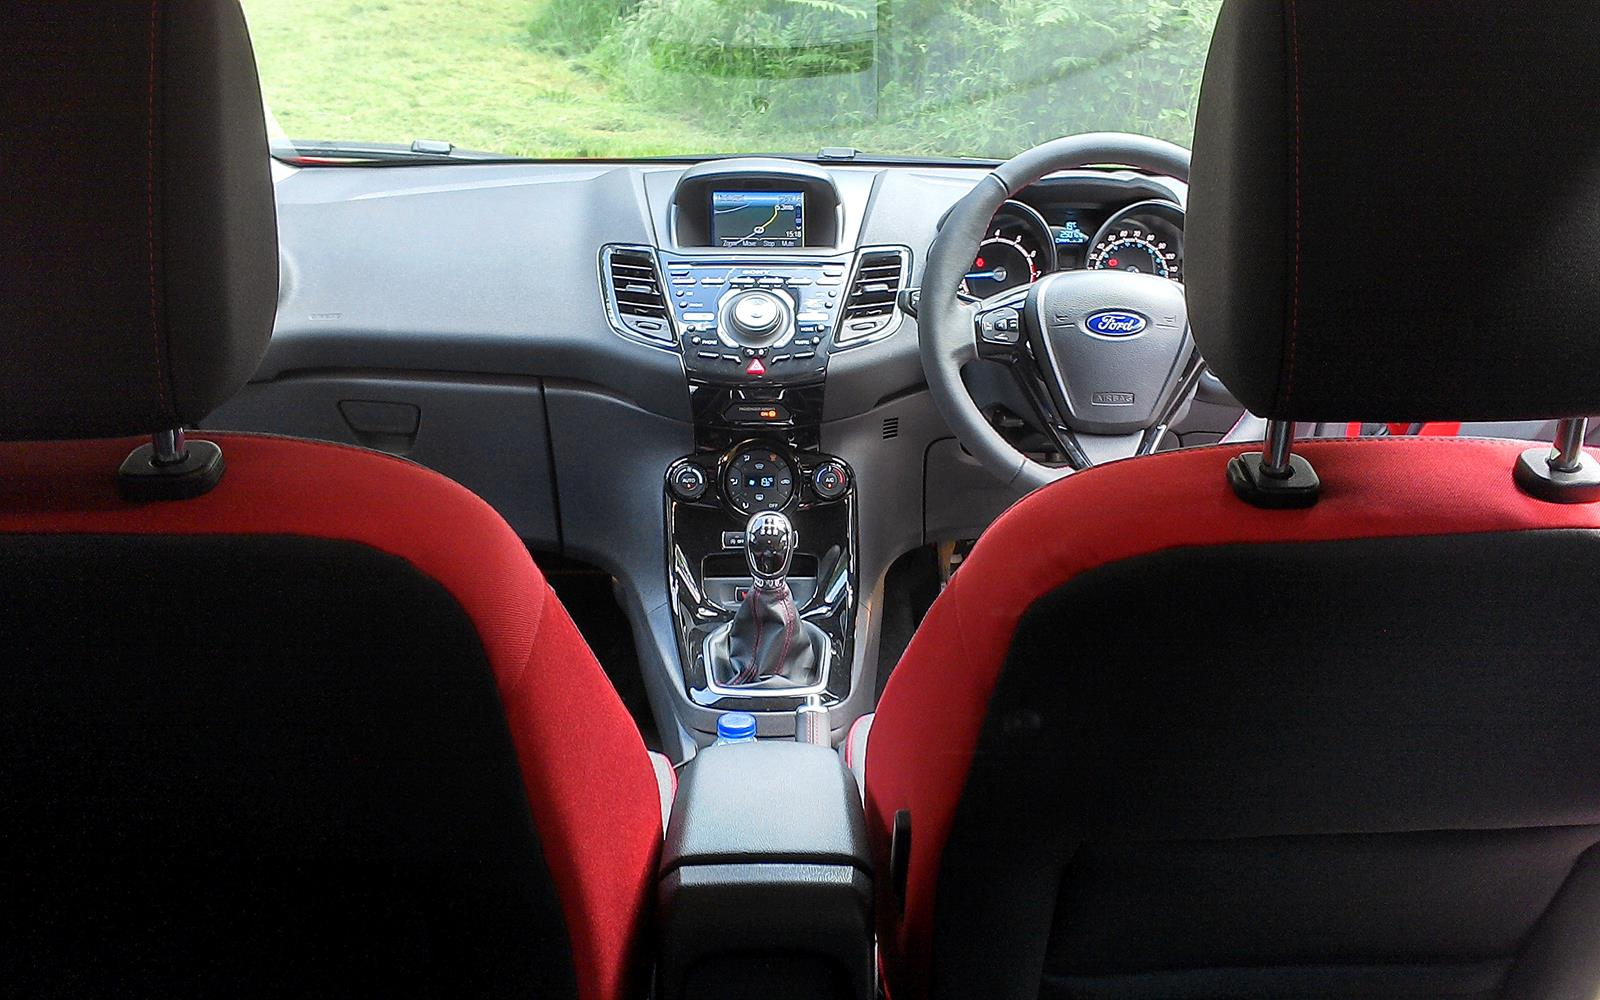 ford fiesta red black edition 2014 interior from rear phil huff front. Black Bedroom Furniture Sets. Home Design Ideas